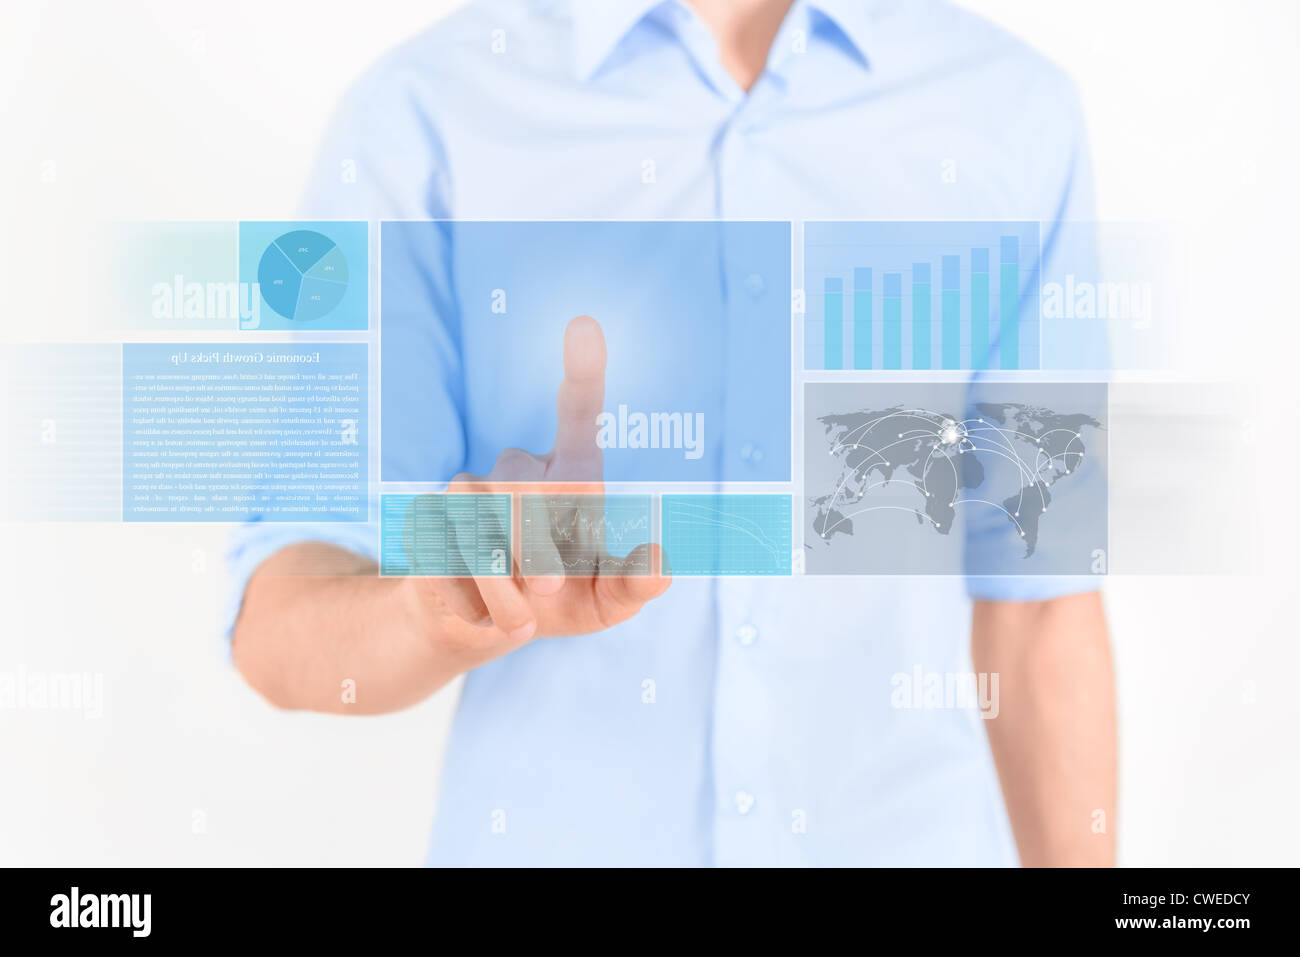 Man touching futuristic touchscreen interface with some graphic, charts and news. Isolated on white. - Stock Image